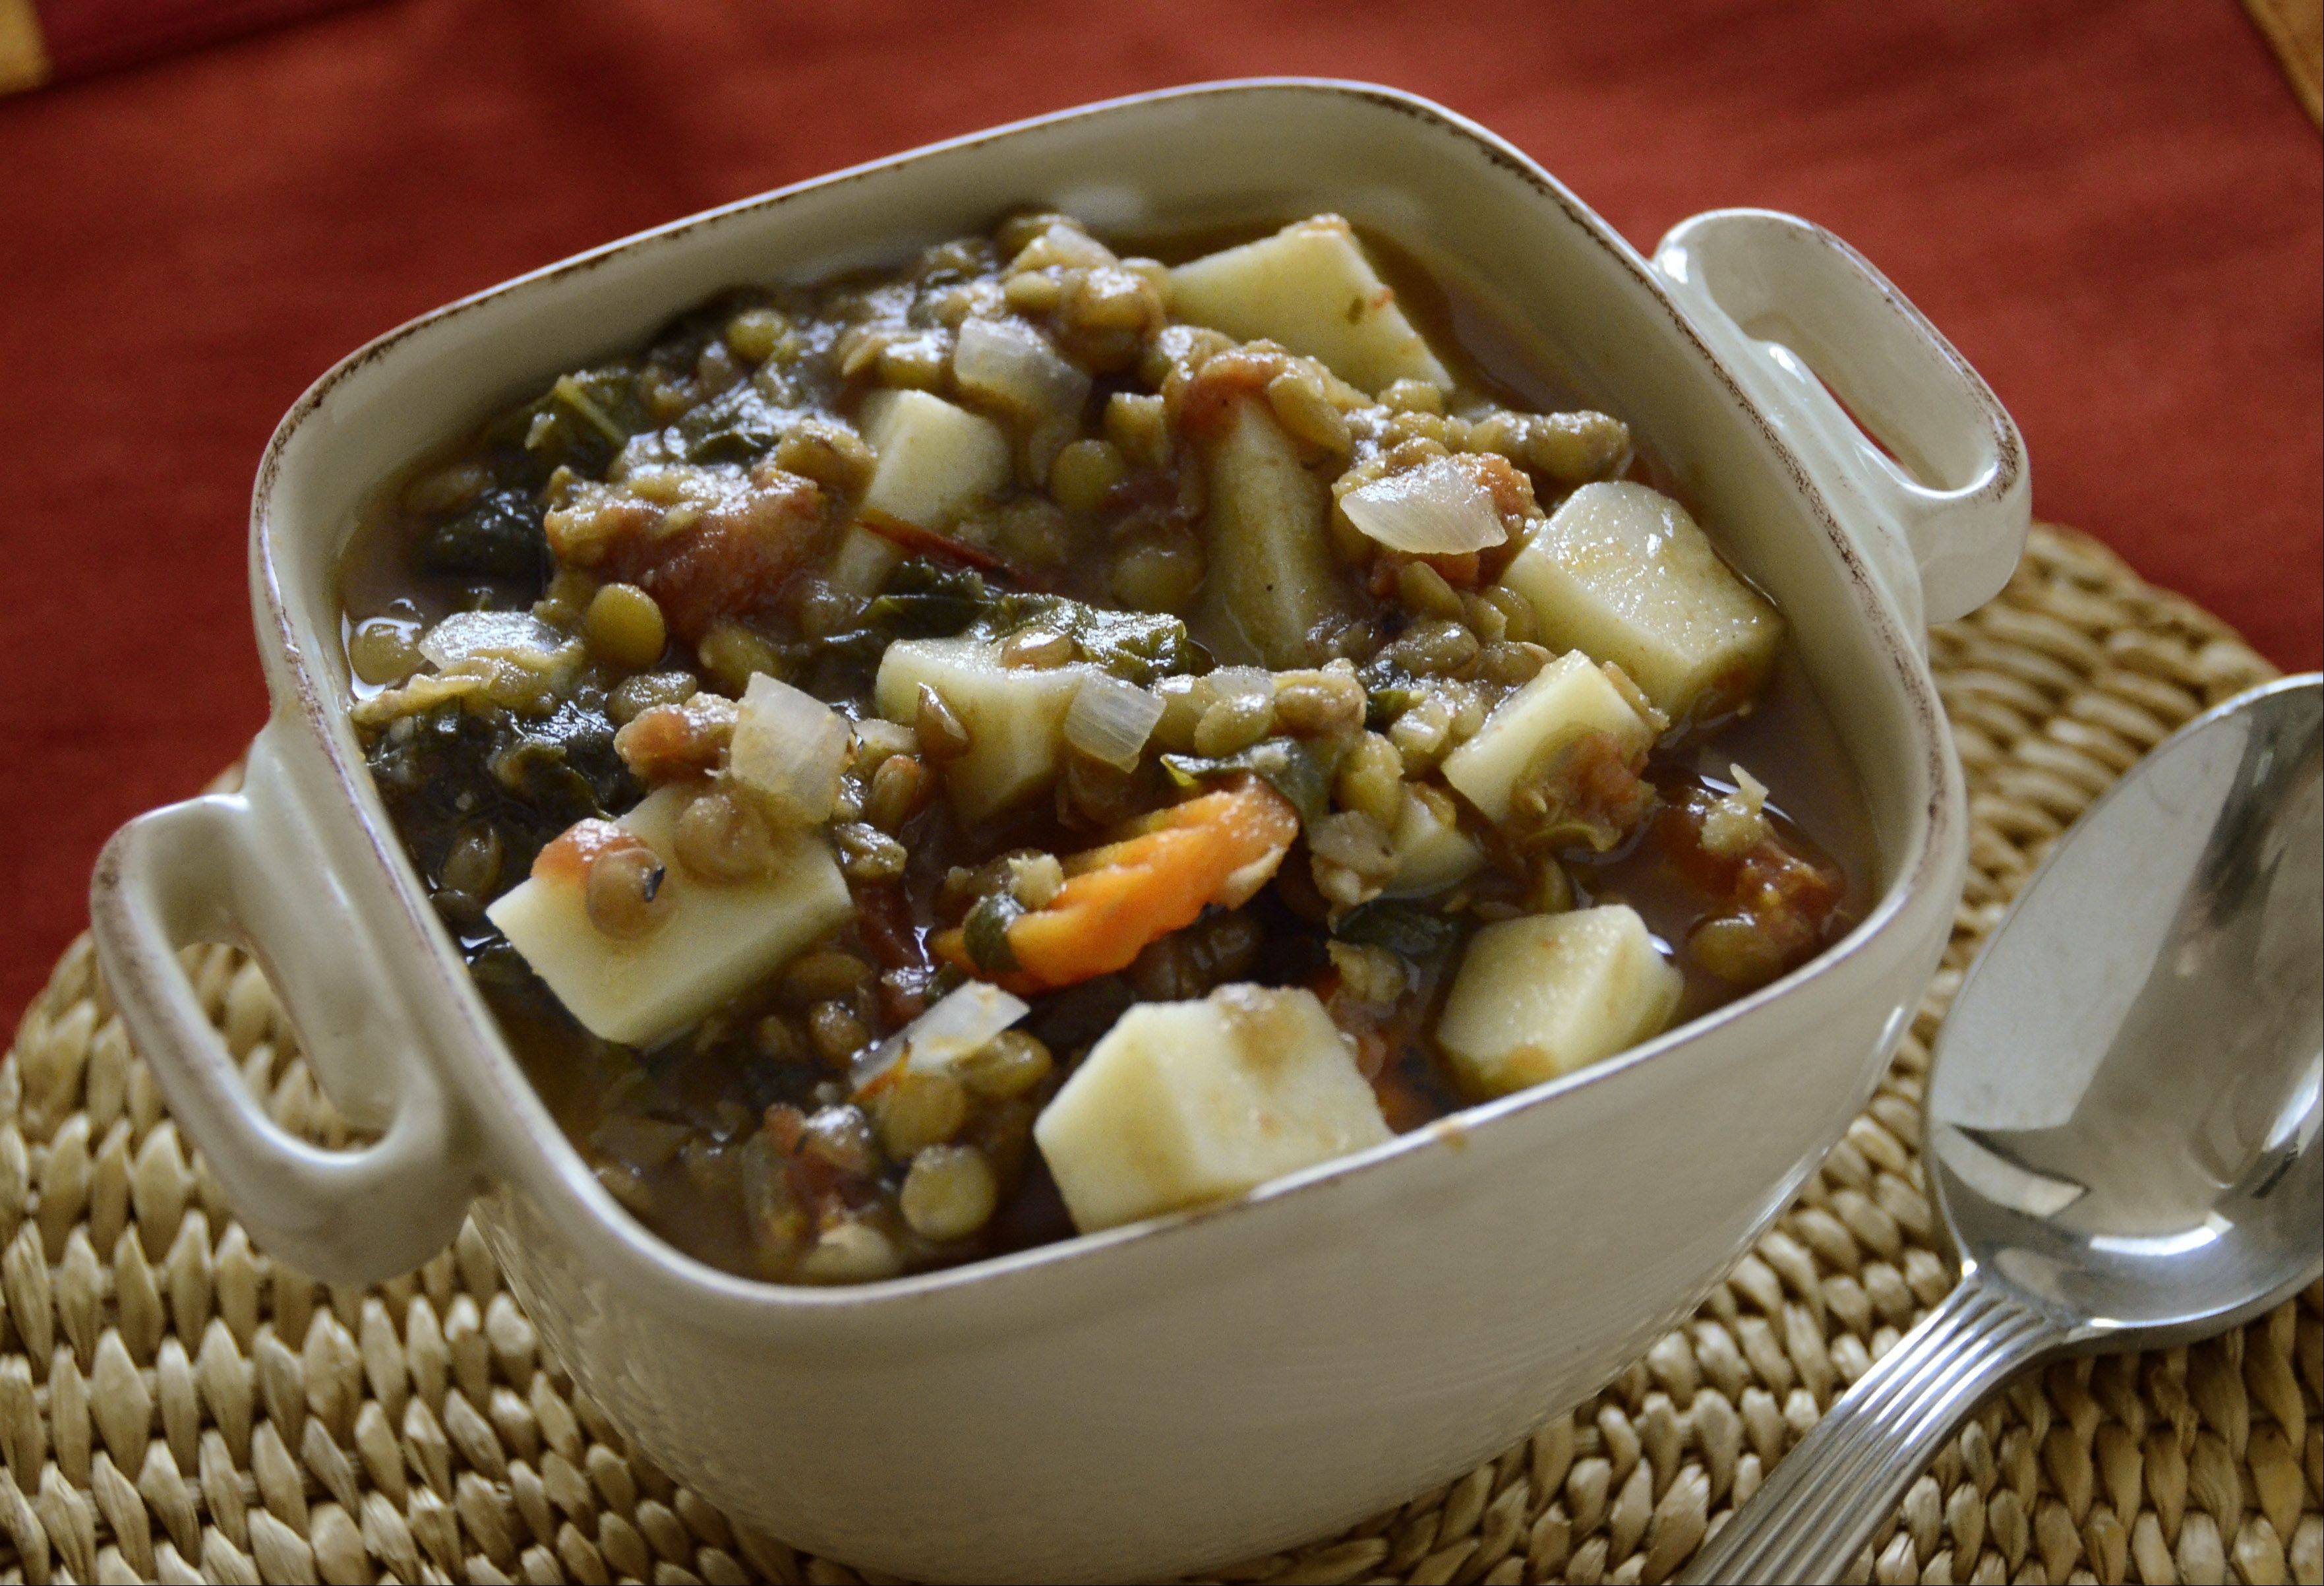 Use the freshest Swiss chard you can find and you'll be pleased with the flavor of this hearty lentil soup.